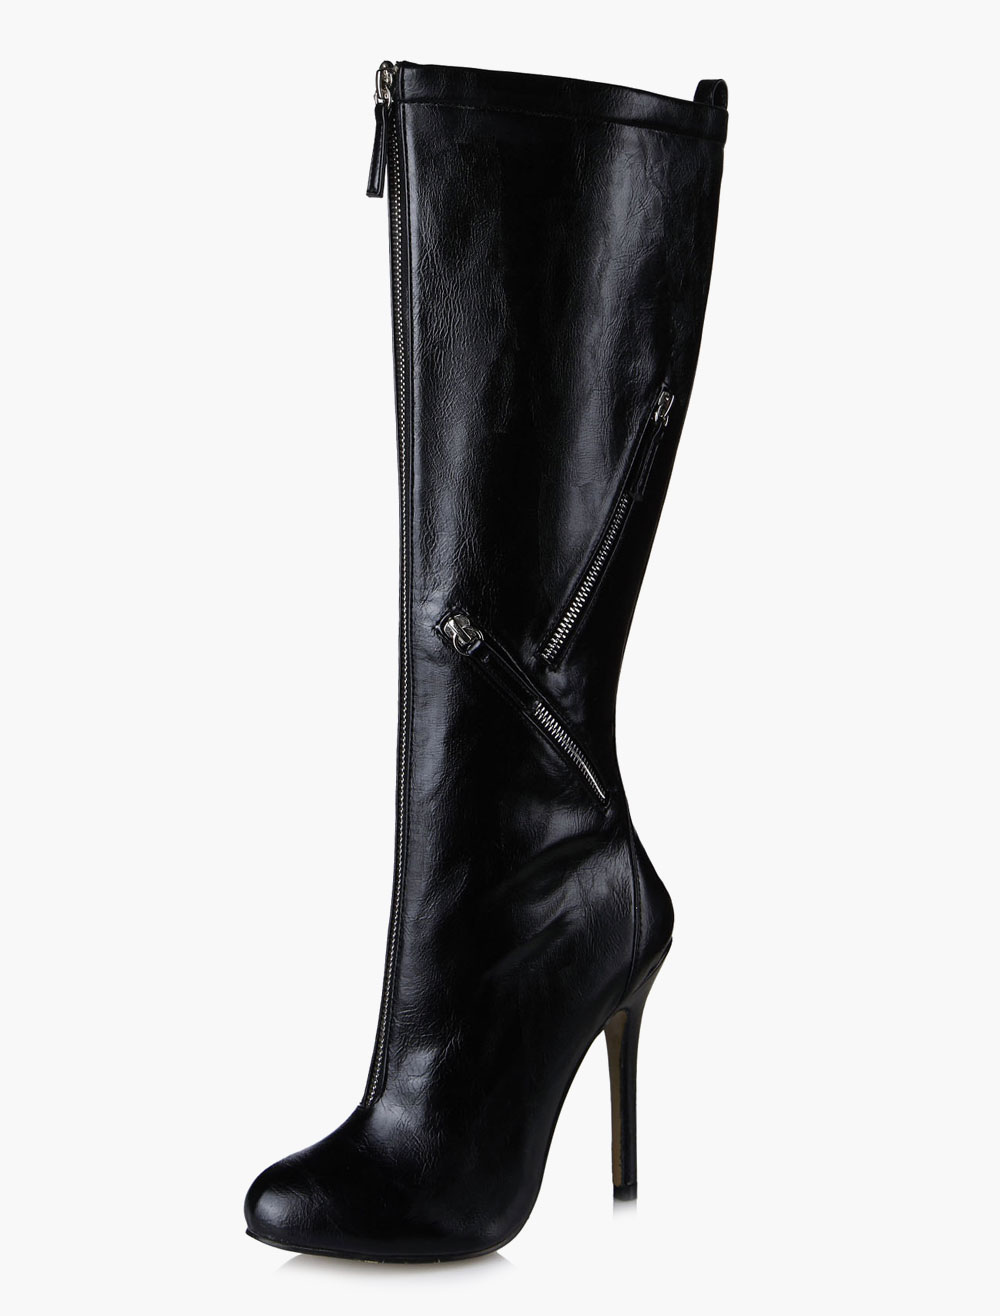 Black Zipper High Heel Mid Calf Boots